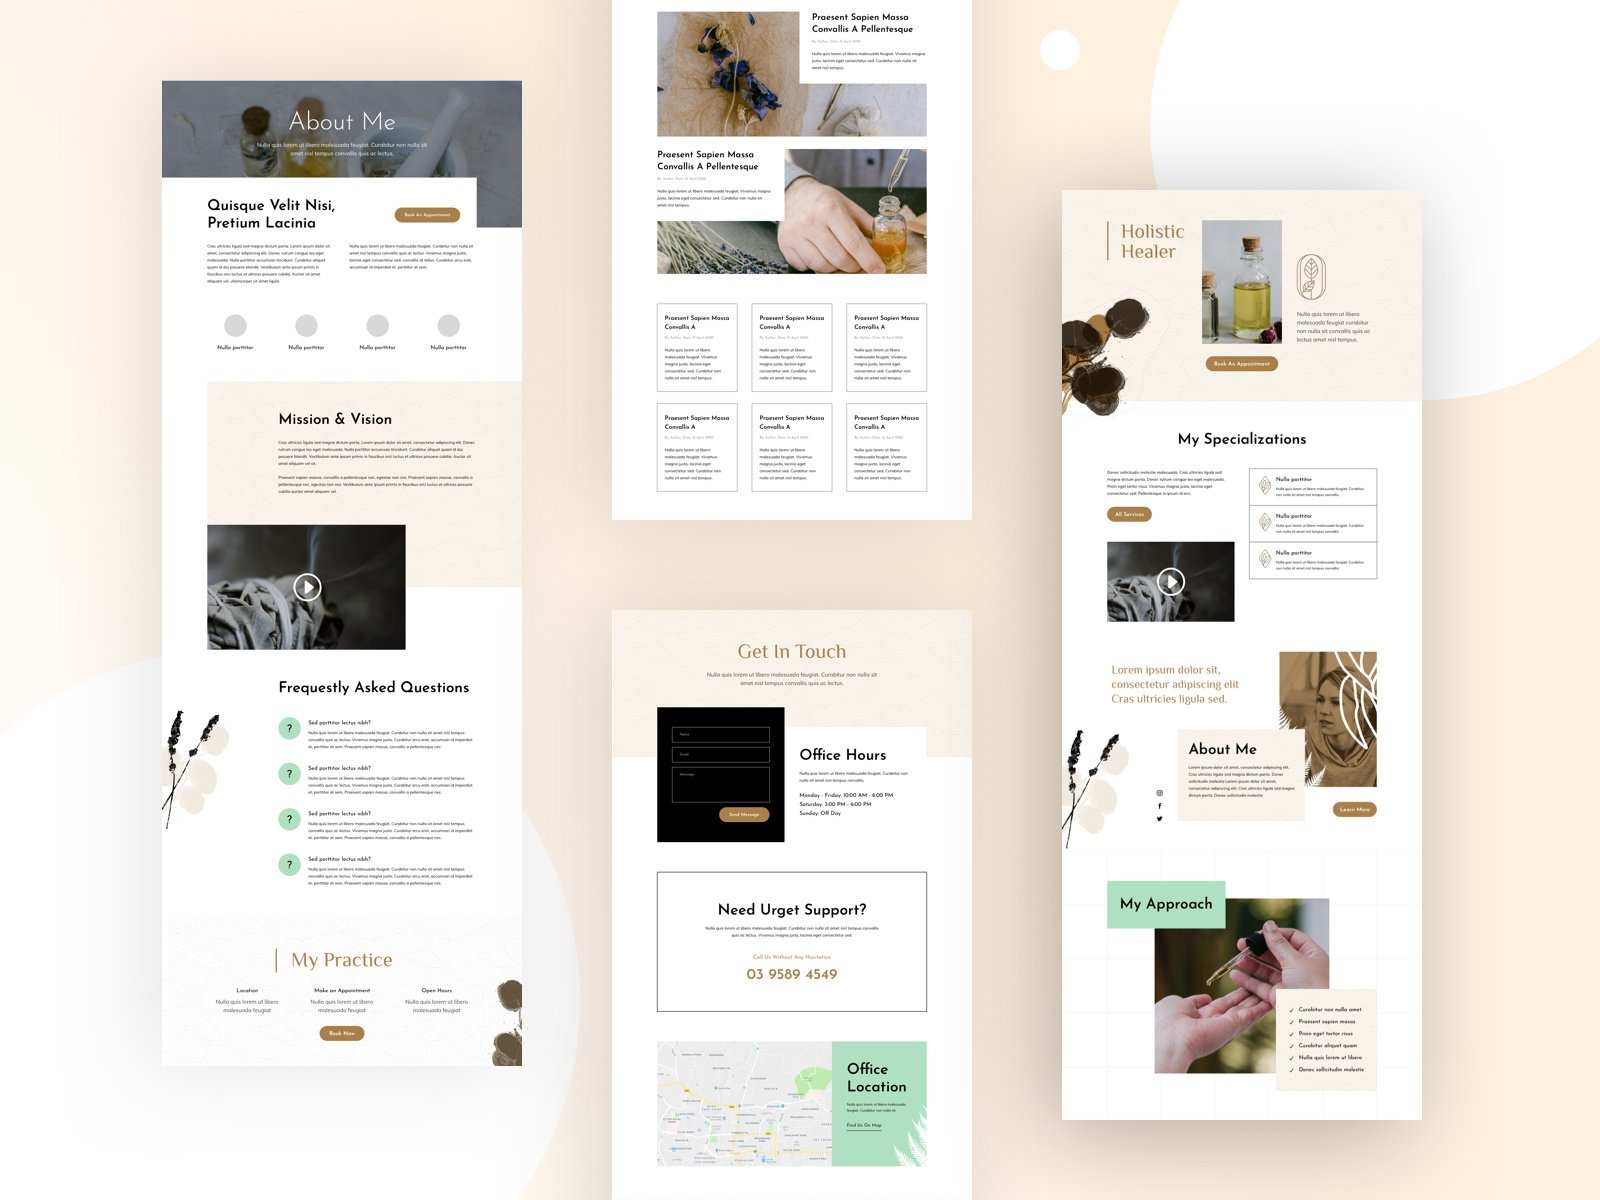 Holistic Healer Website Design For Divi by Sayeed Ahmad for Elegant Themes  on Dribbble